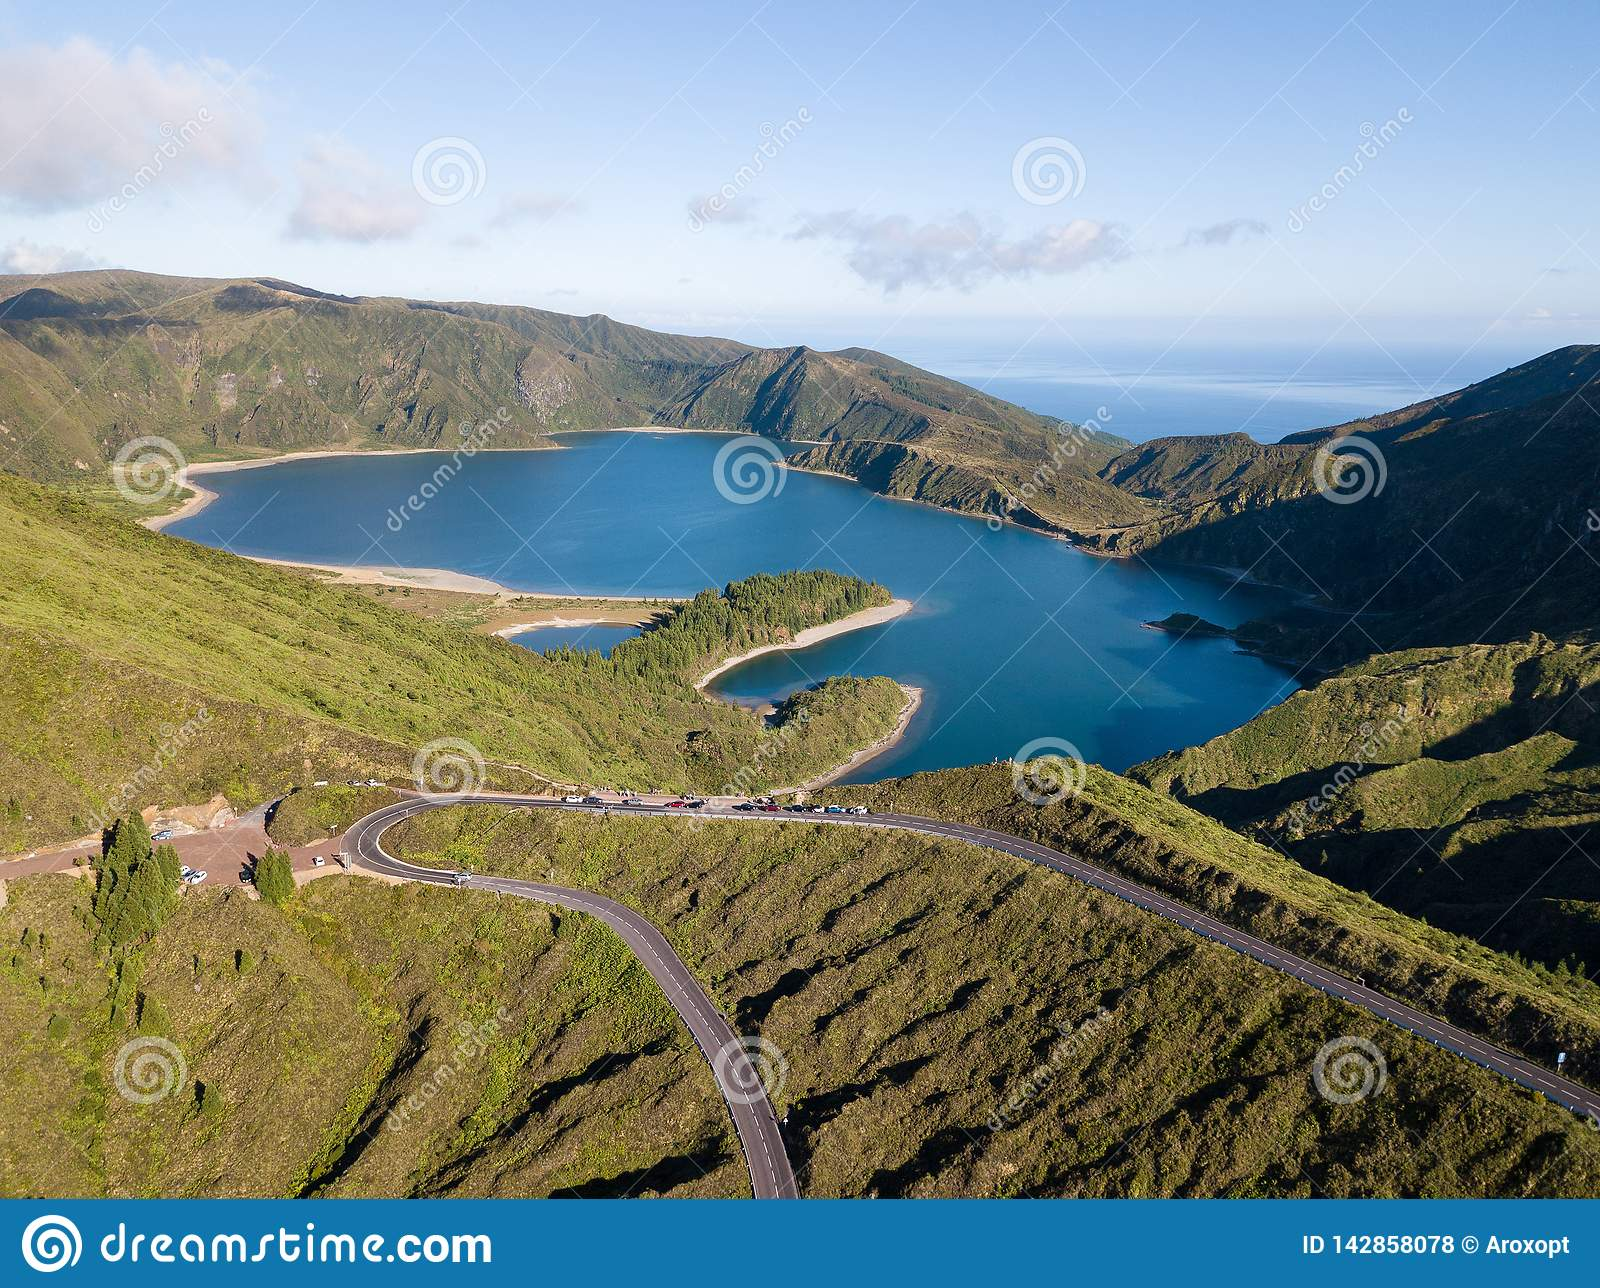 Aerial View Of Lagoa Do Fogo A Volcanic Lake In Sao Miguel